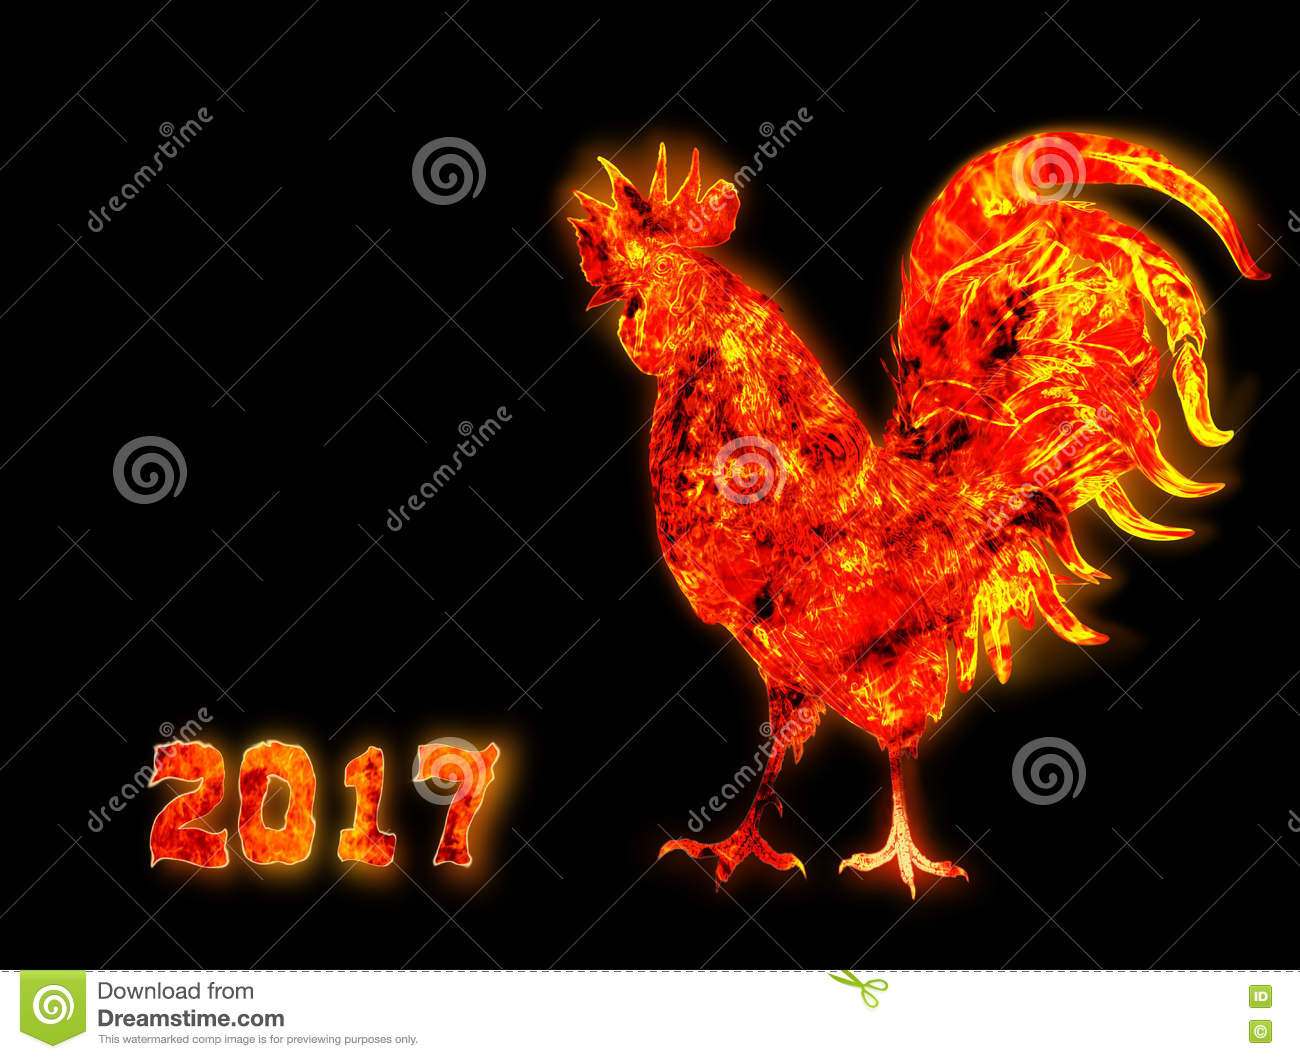 Colorful Fire rooster. symbol of the Chinese New Year. Fire bird, red cock. Happy New Year 2017 card